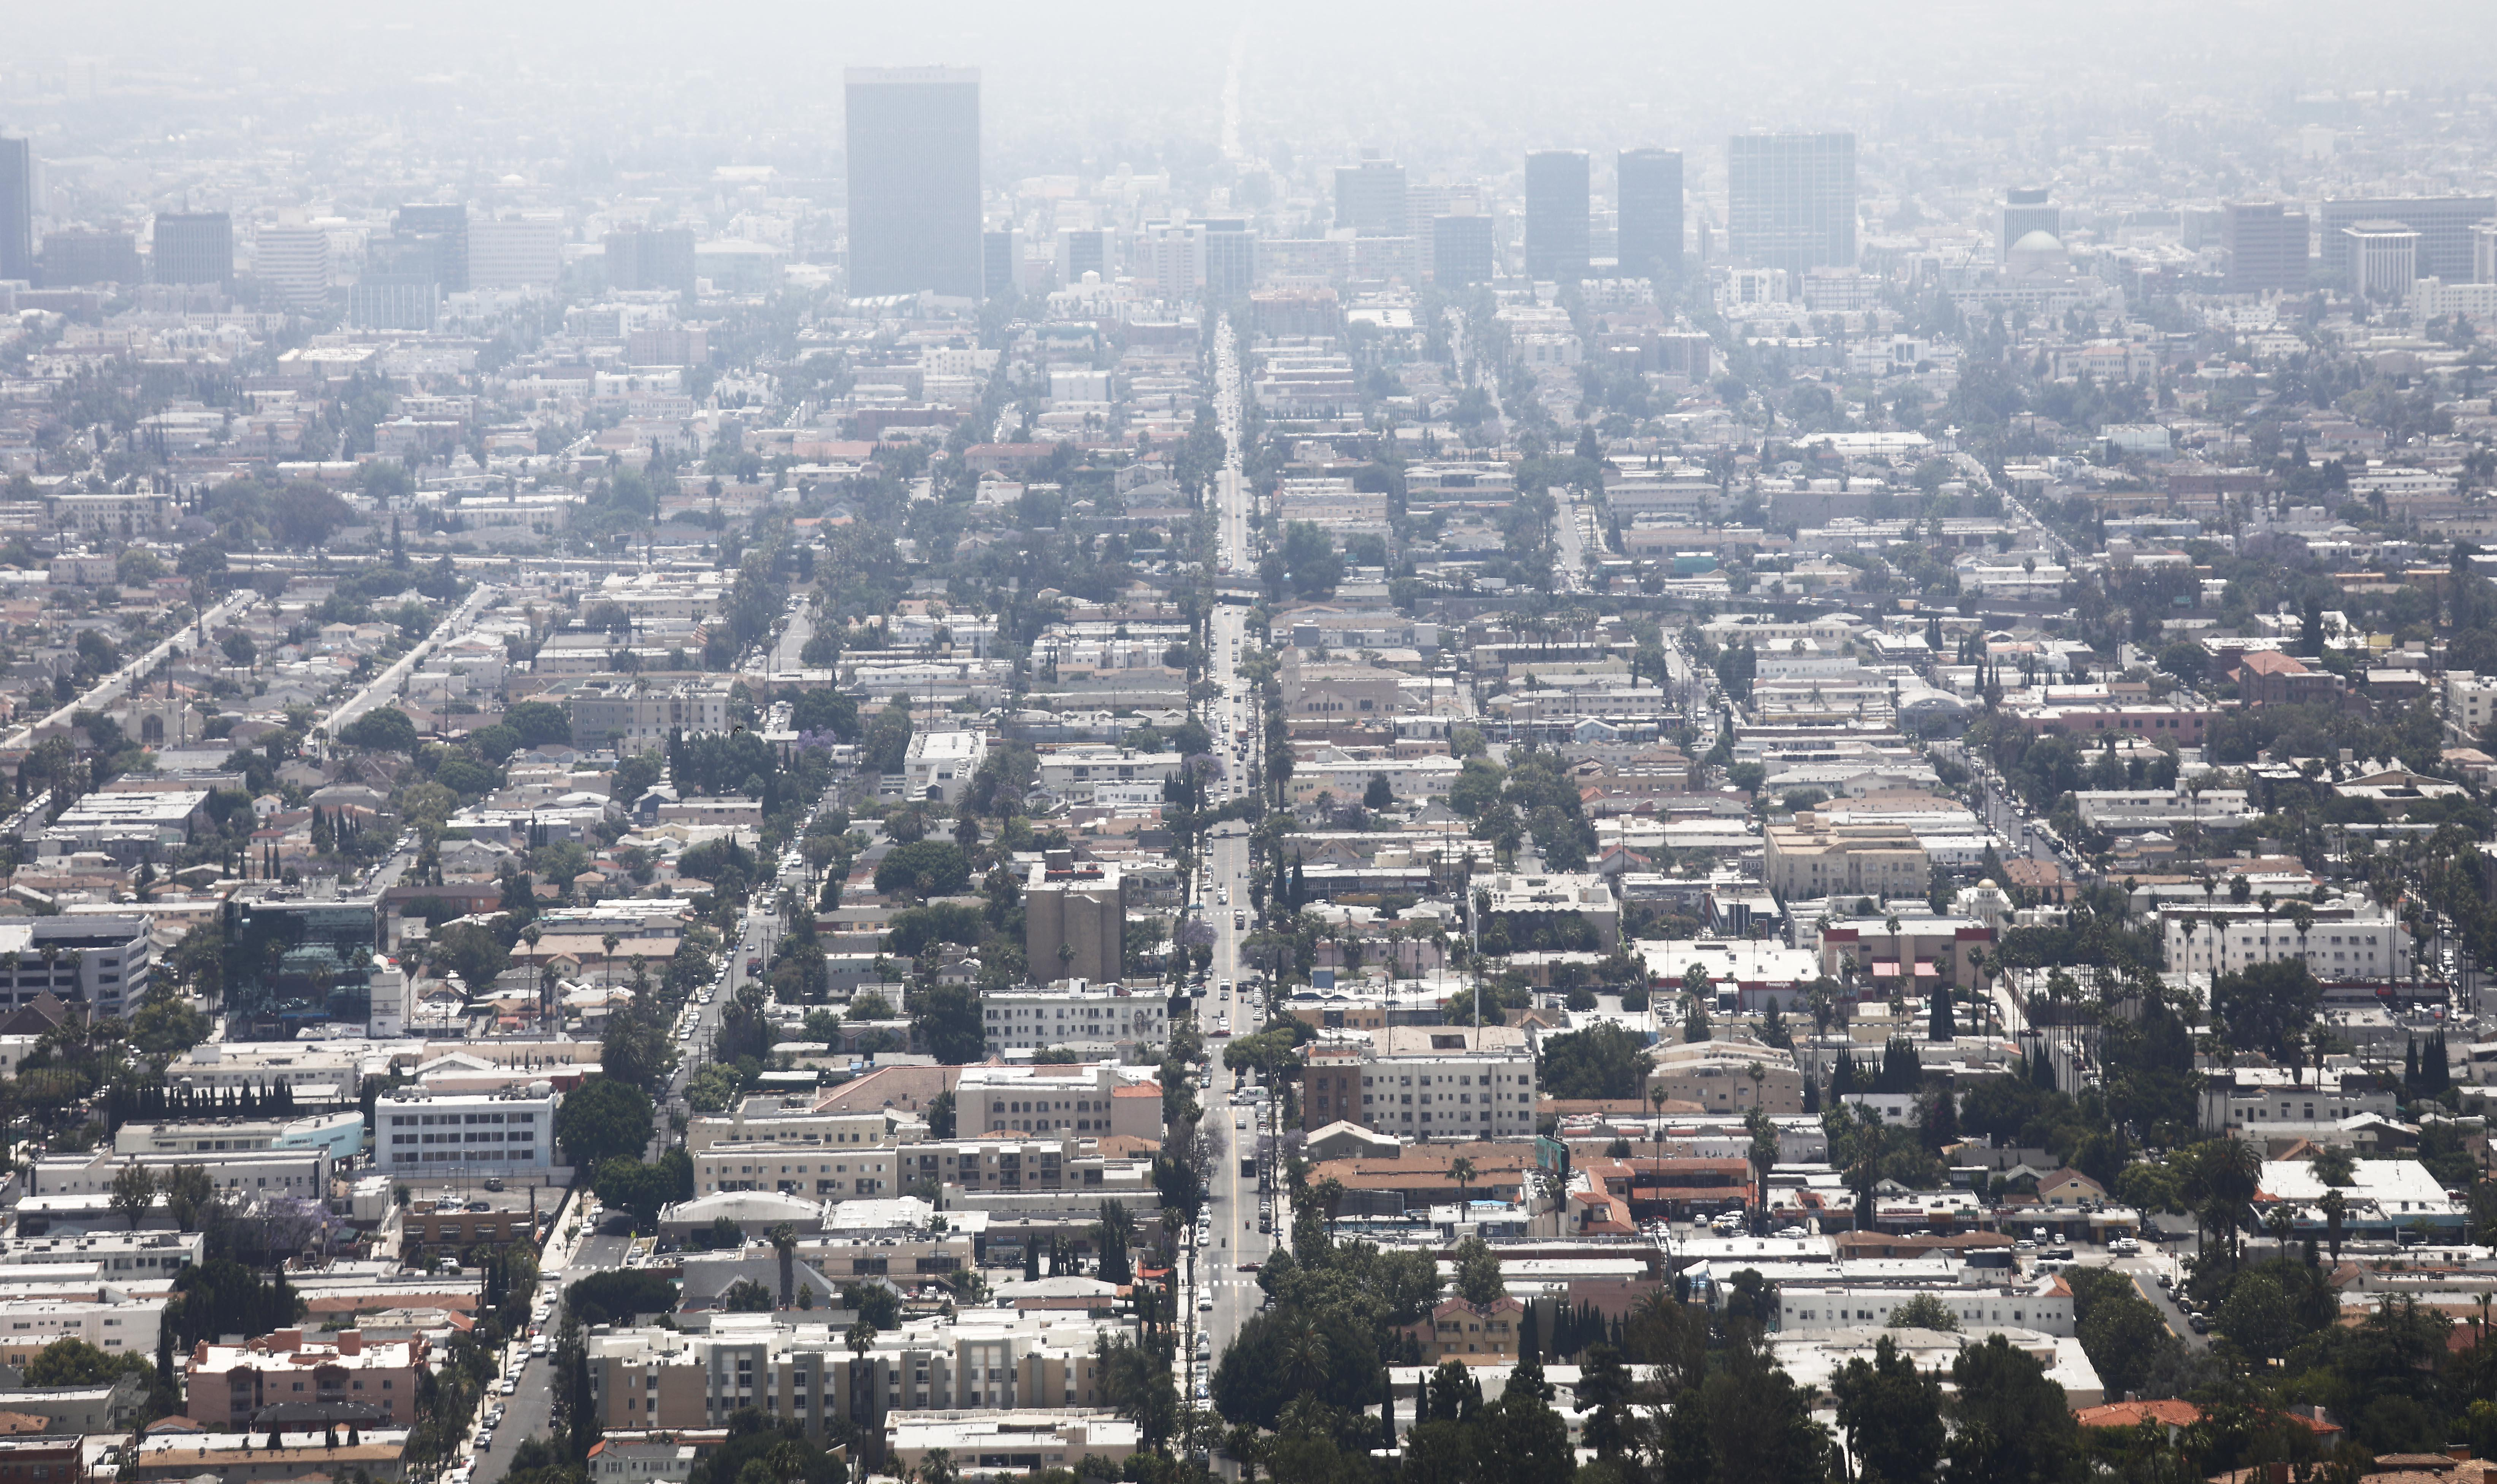 Los Angeles Remains In Top Spot, For City With Worst Air Pollution In The U.S.